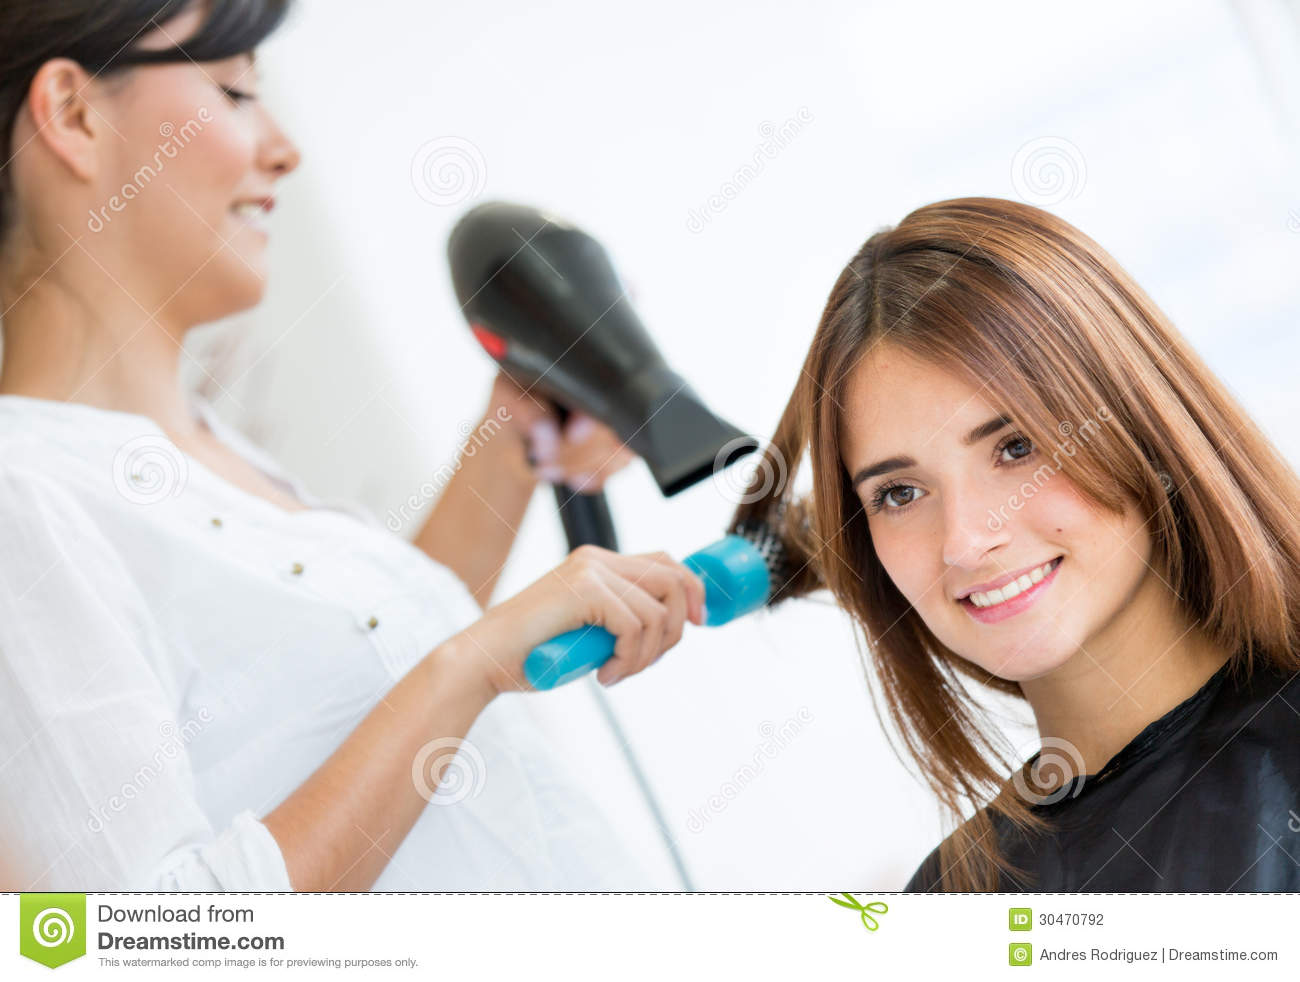 Beautiful women at the hair salon blow drying her hair.